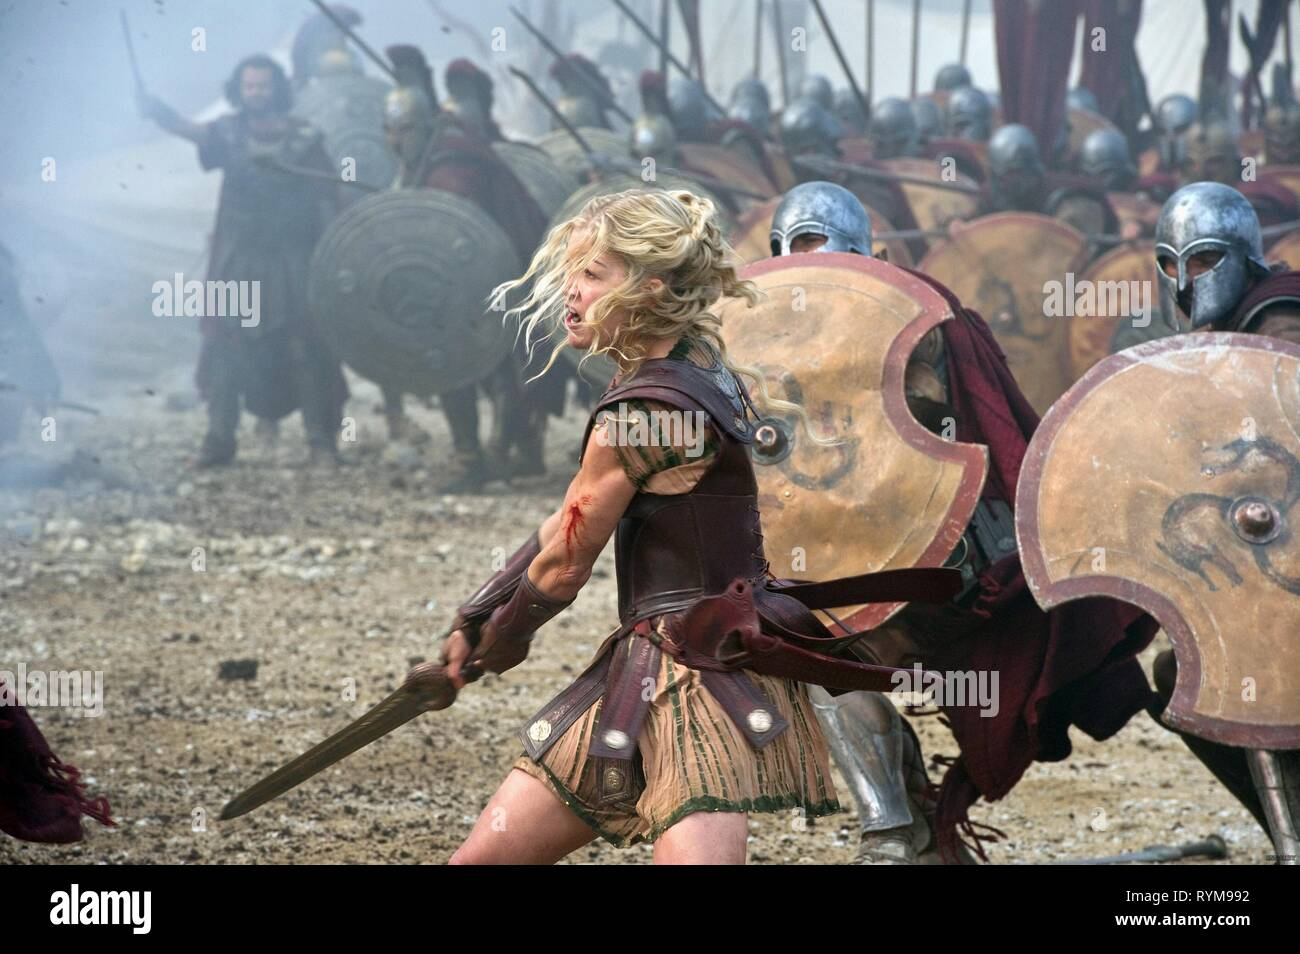 ROSAMUND PIKE, WRATH OF THE TITANS, 2012 - Stock Image